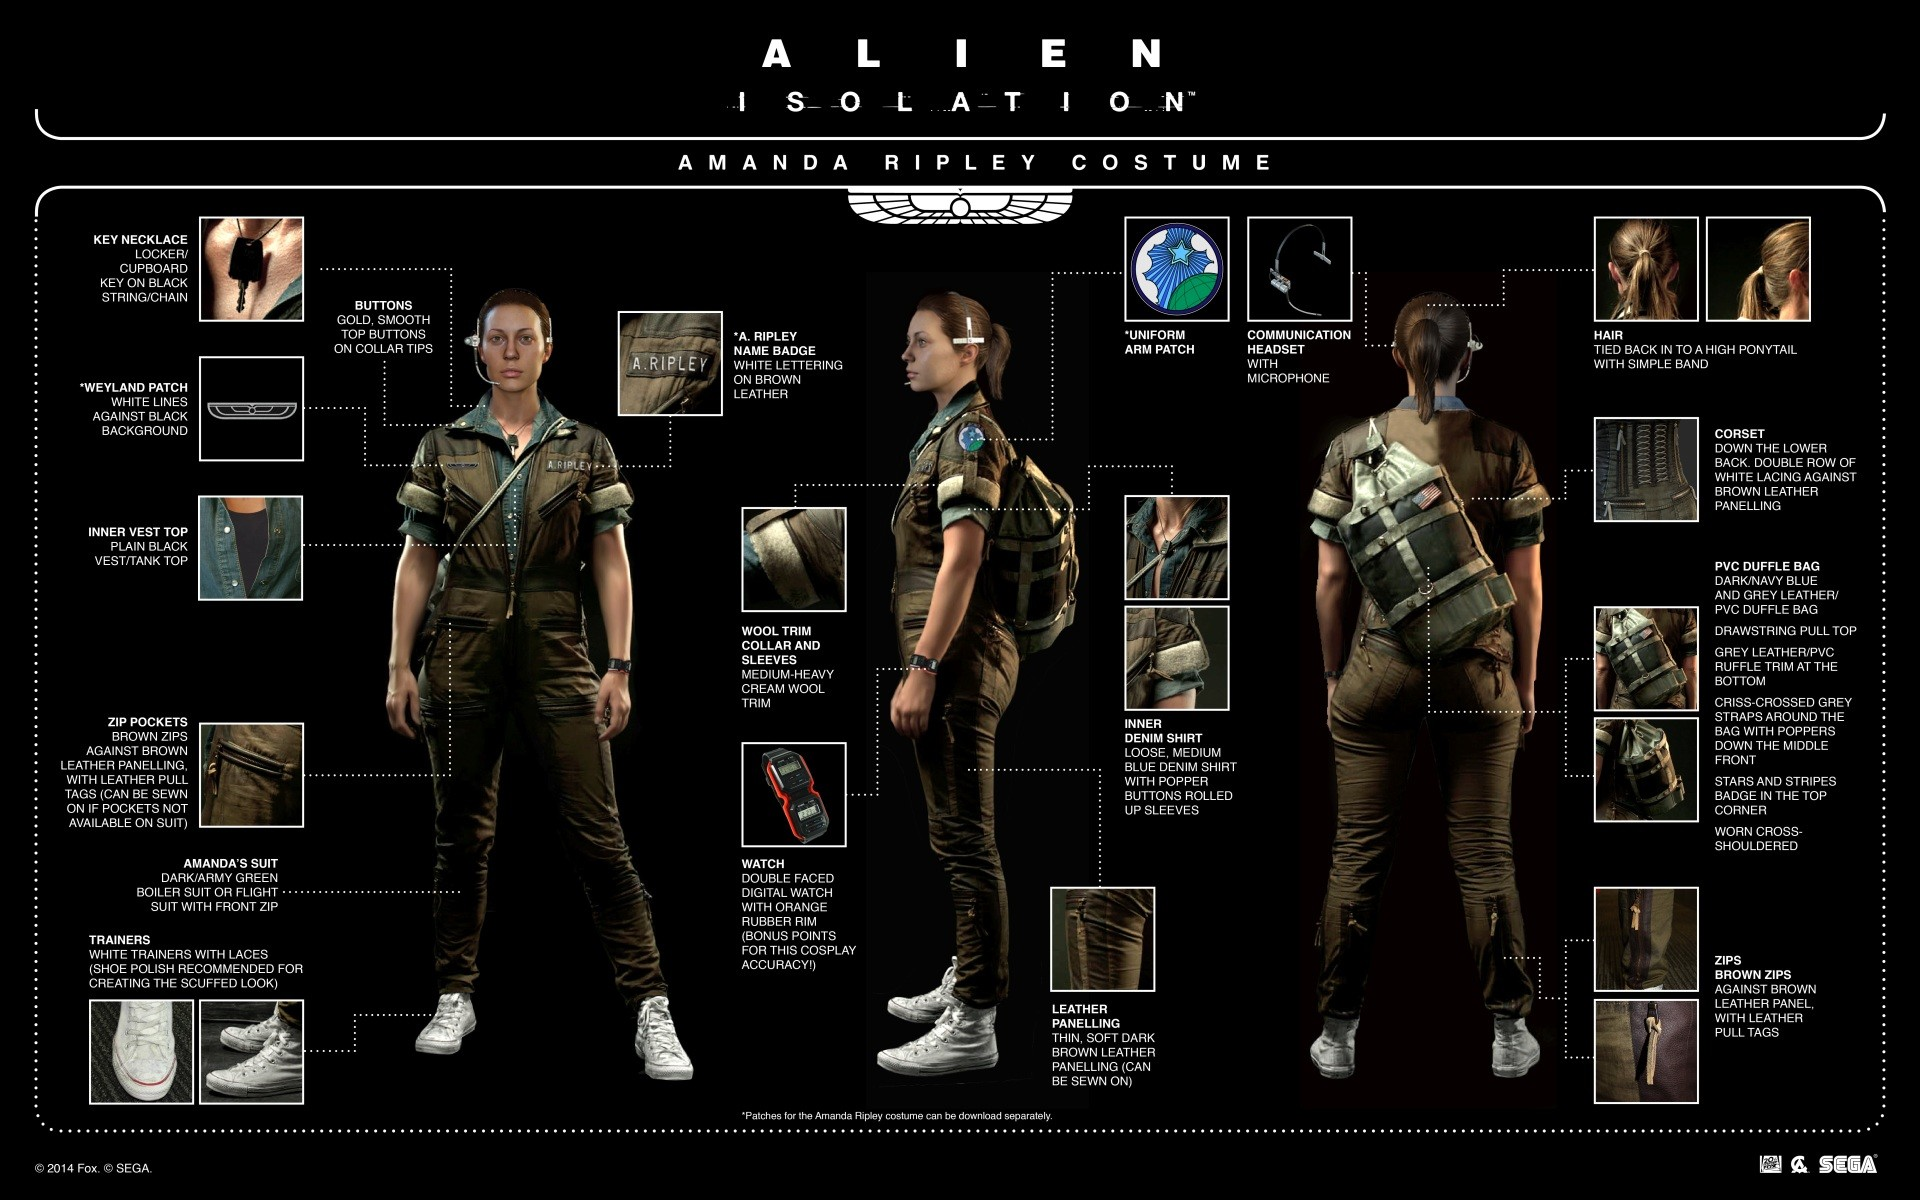 … wallpapers and boxart for Alien Isolation. 1_ai_cosplay_amanda.jpg